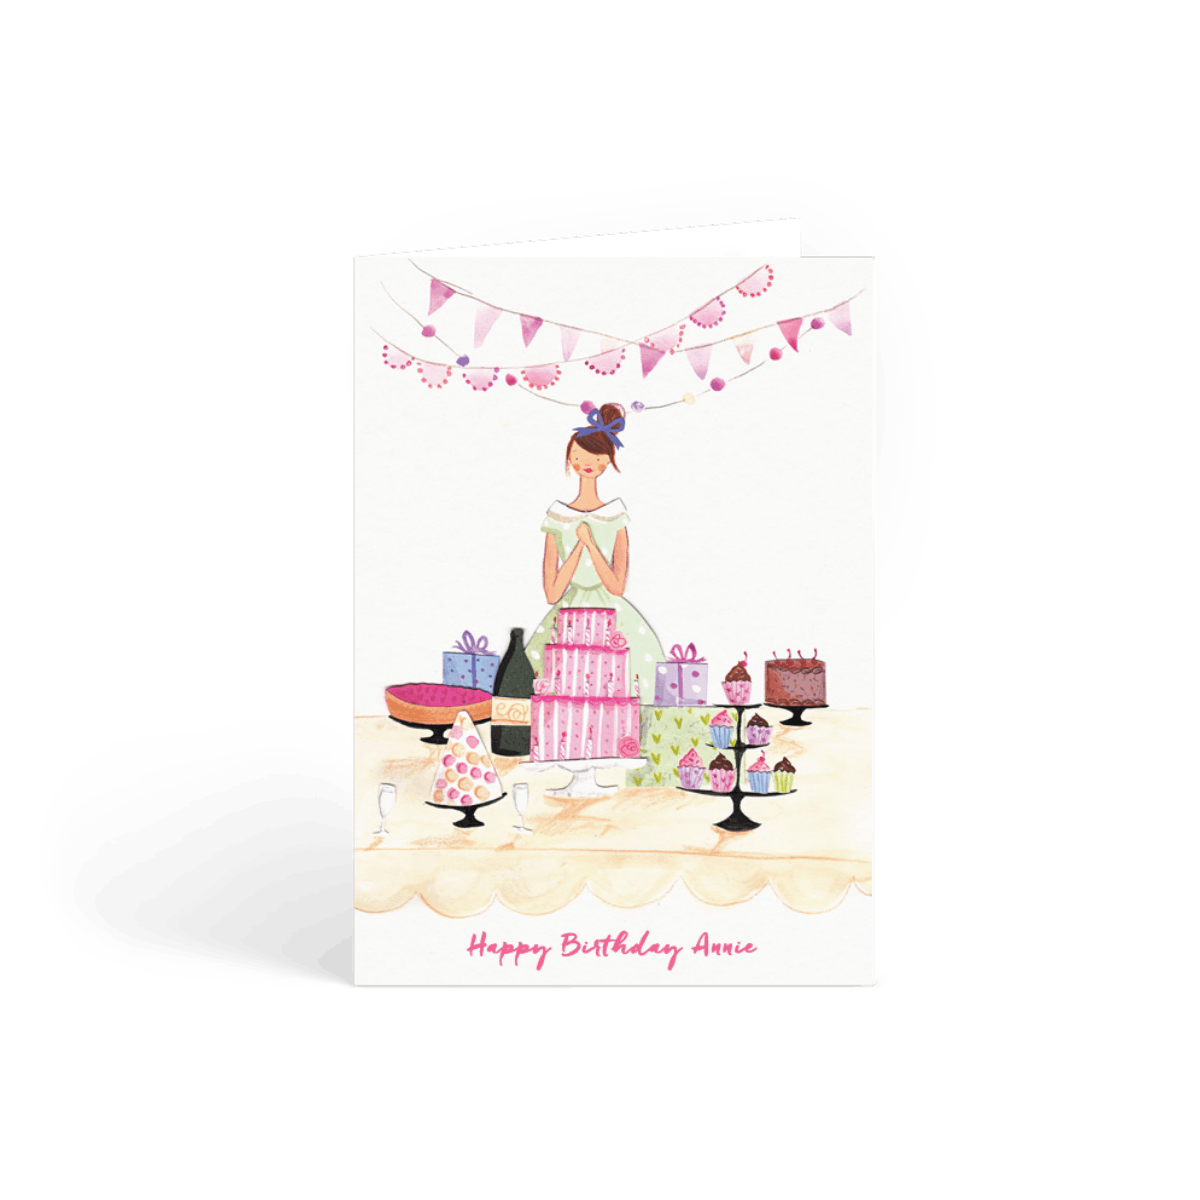 Https%3a%2f%2fwww.papier.com%2fproduct image%2f51107%2f2%2fbirthday party girl 12520 avant 1540394468.png?ixlib=rb 1.1